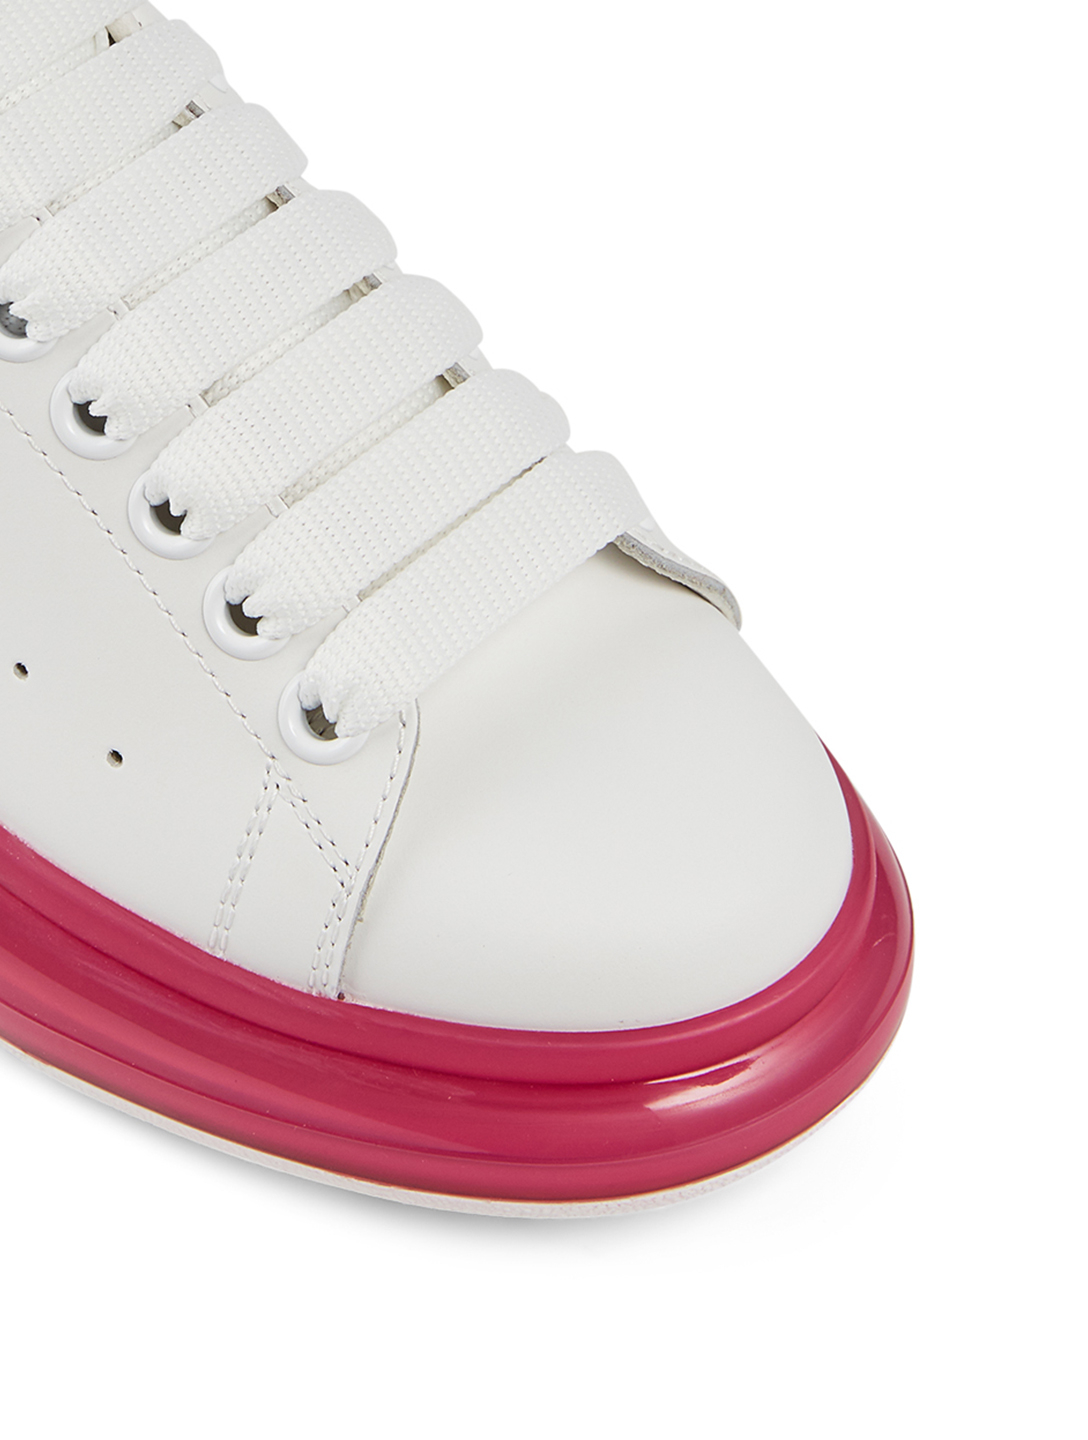 ALEXANDER MCQUEEN Oversized Leather Sneakers Women's Pink